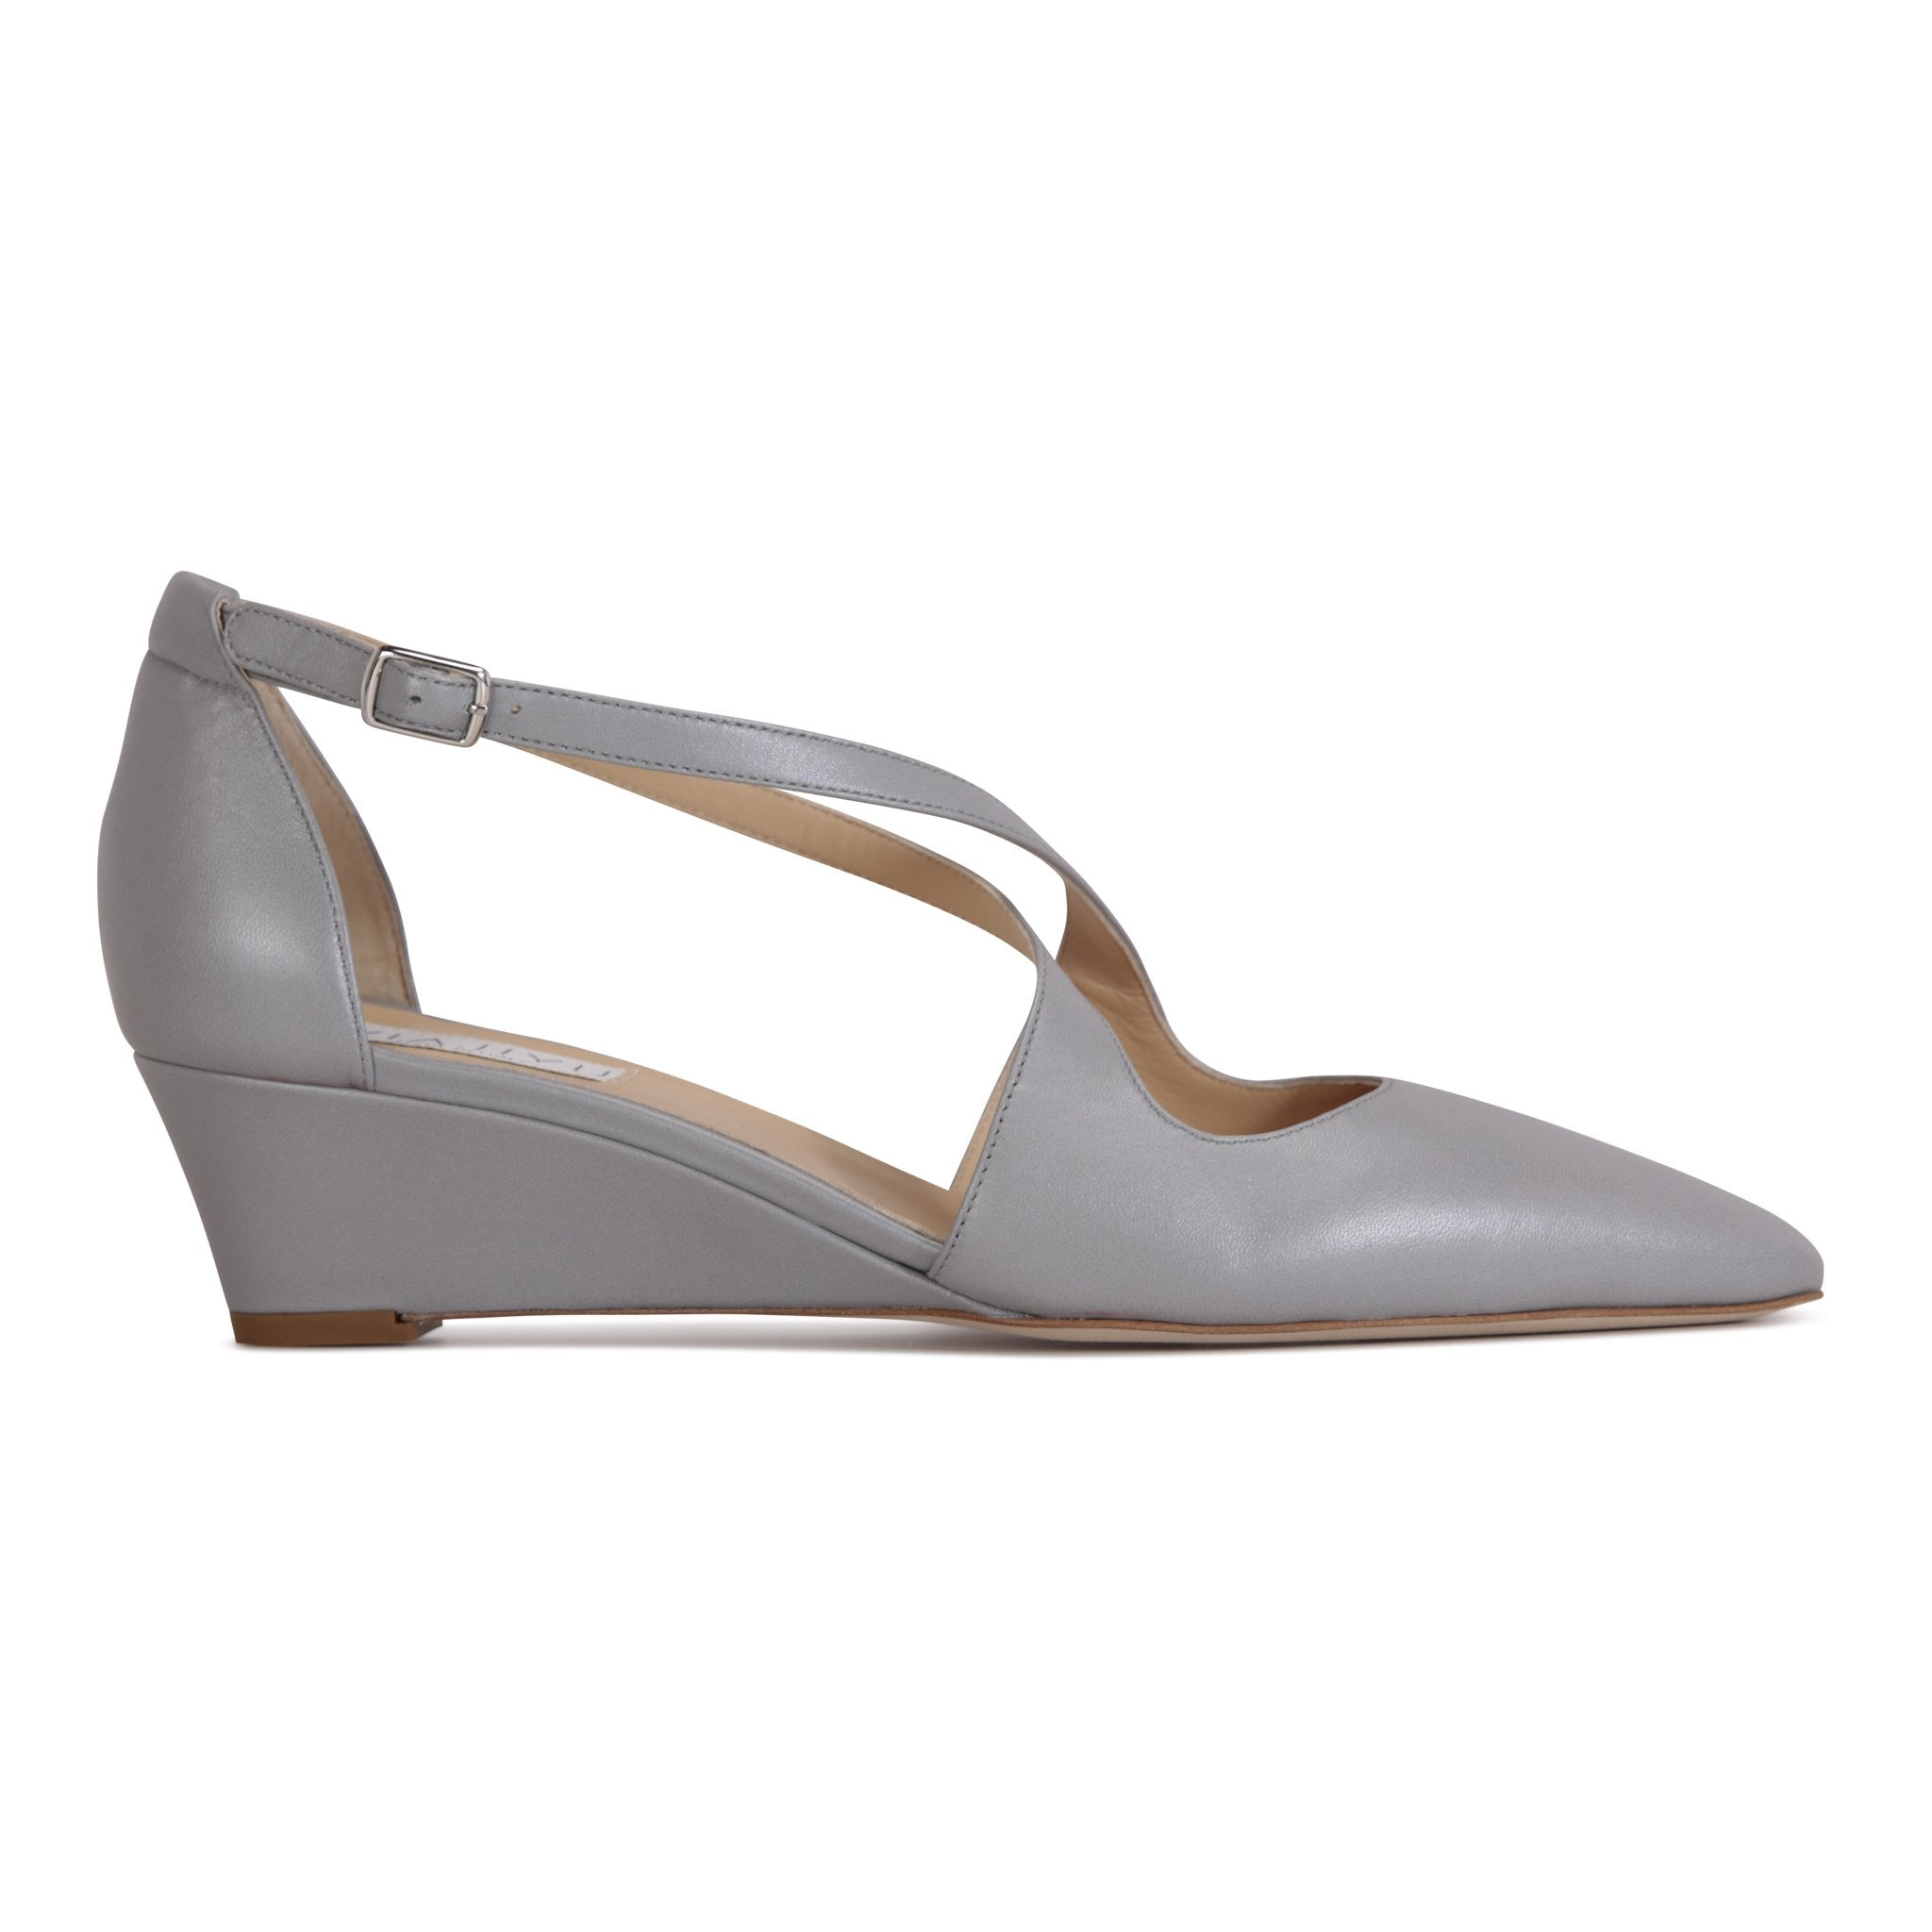 AREZZO - Nappa Pewter, VIAJIYU - Women's Hand Made Sustainable Luxury Shoes. Made in Italy. Made to Order.